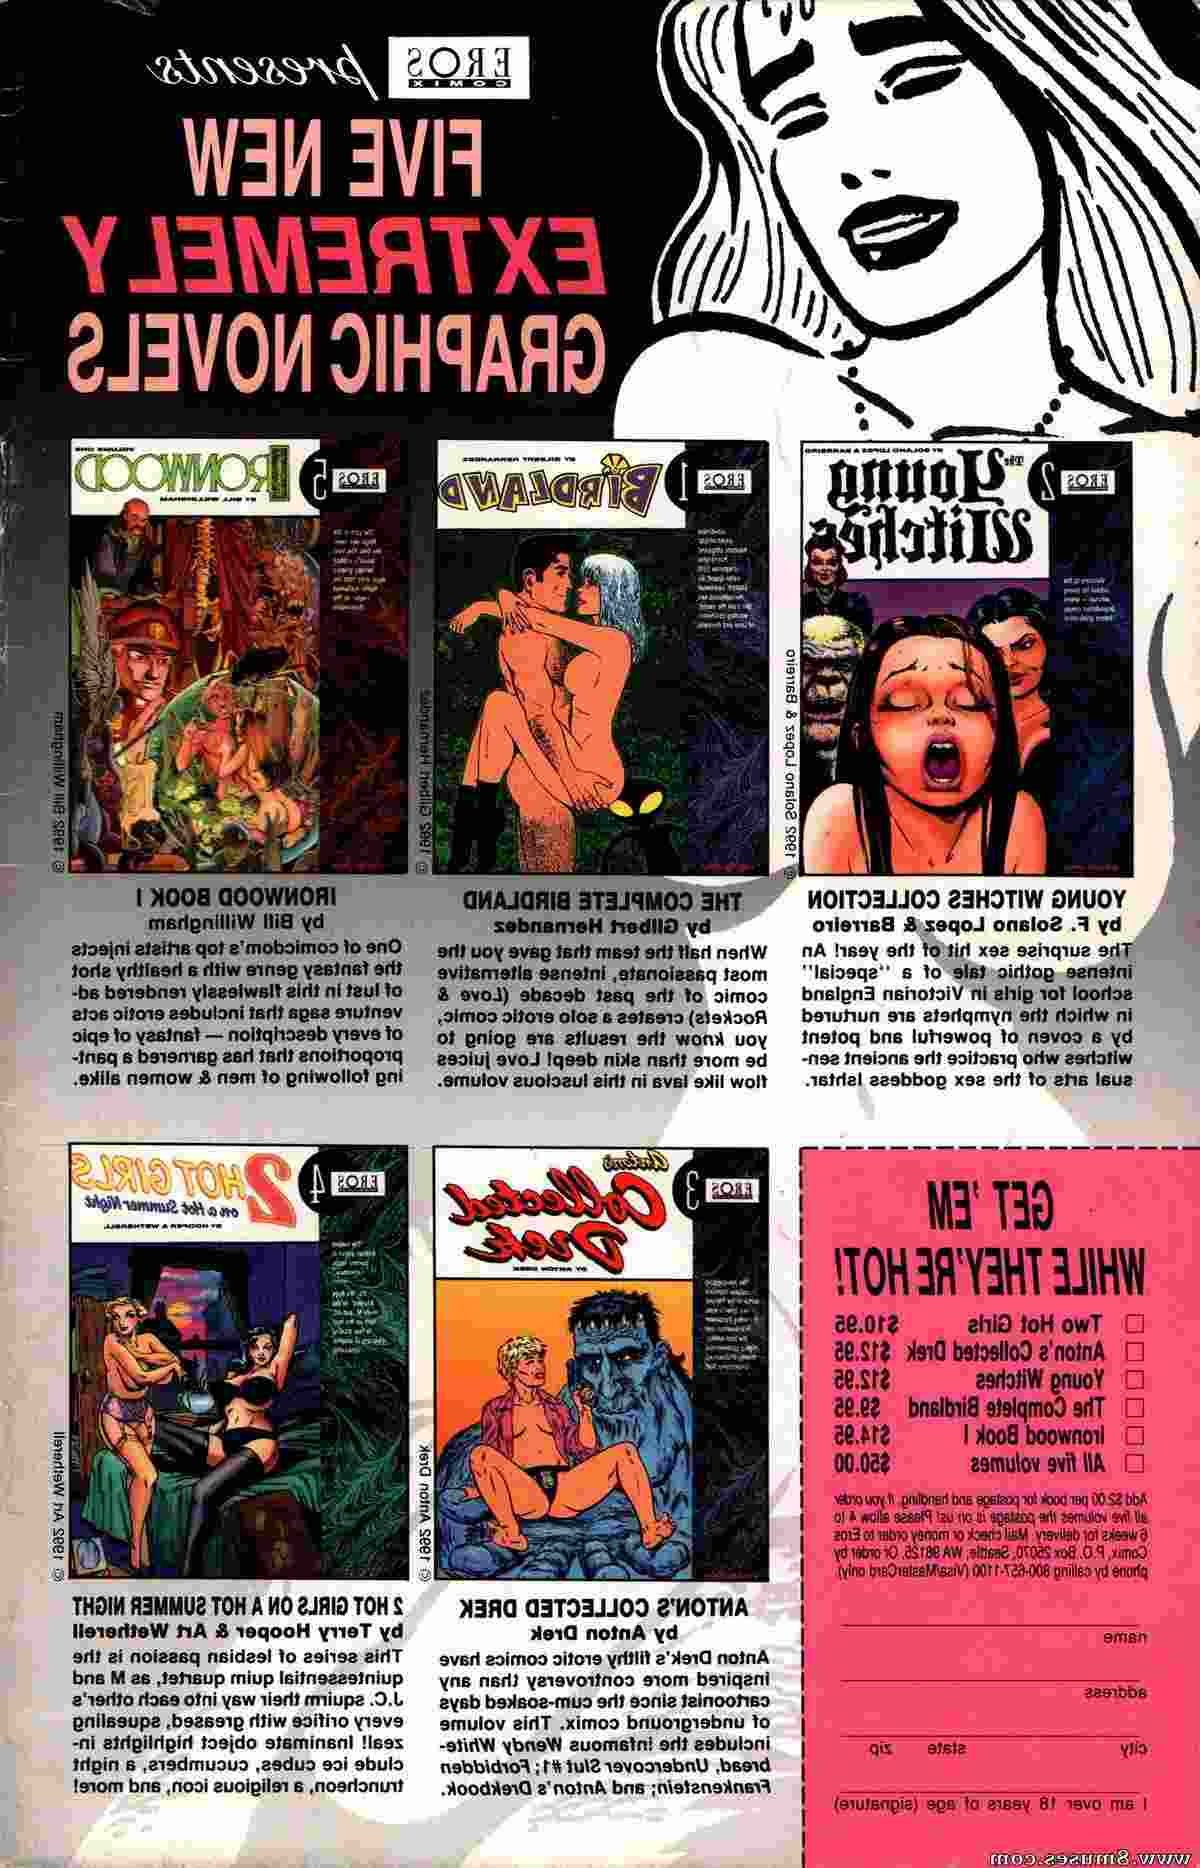 EROS-Comics/Real-Smut Real_Smut__8muses_-_Sex_and_Porn_Comics_28.jpg